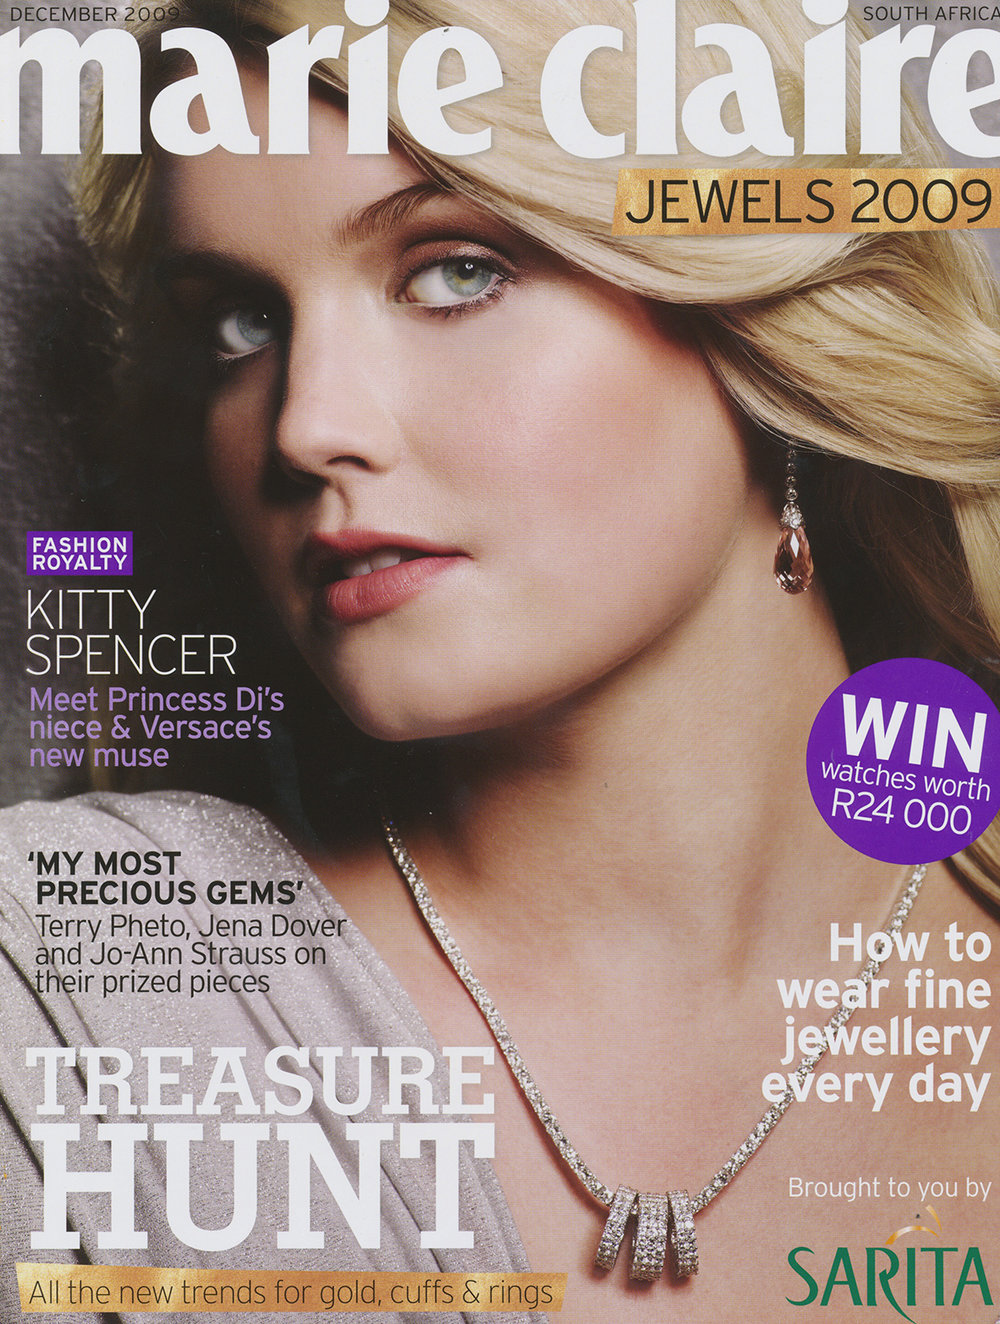 MARIE CLAIRE JEWELS DEC 2009